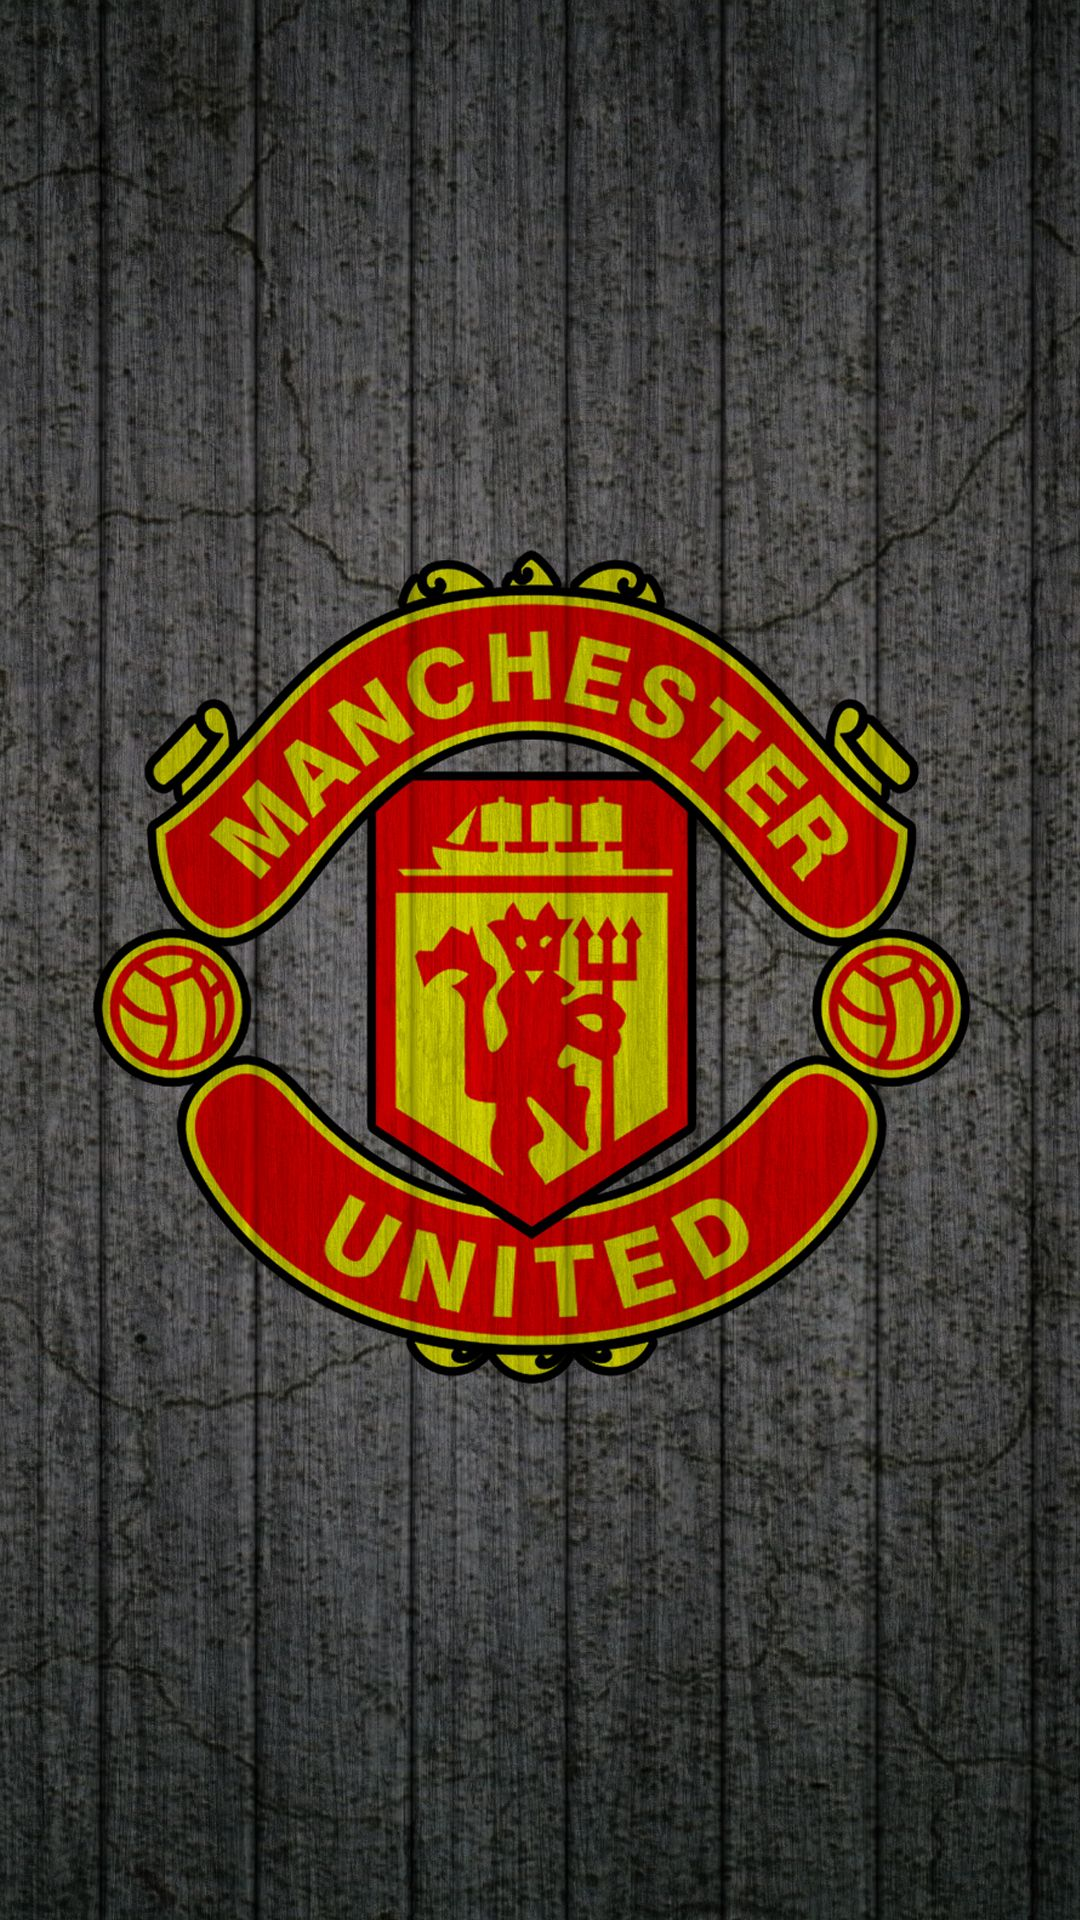 Apple Iphone 6 Plus Hd Wallpaper Manchester United Logo Hd Wallpaper Download For Desktop And Gadgets Picture Trend Manchester United Wallpaper Lucu Lucu